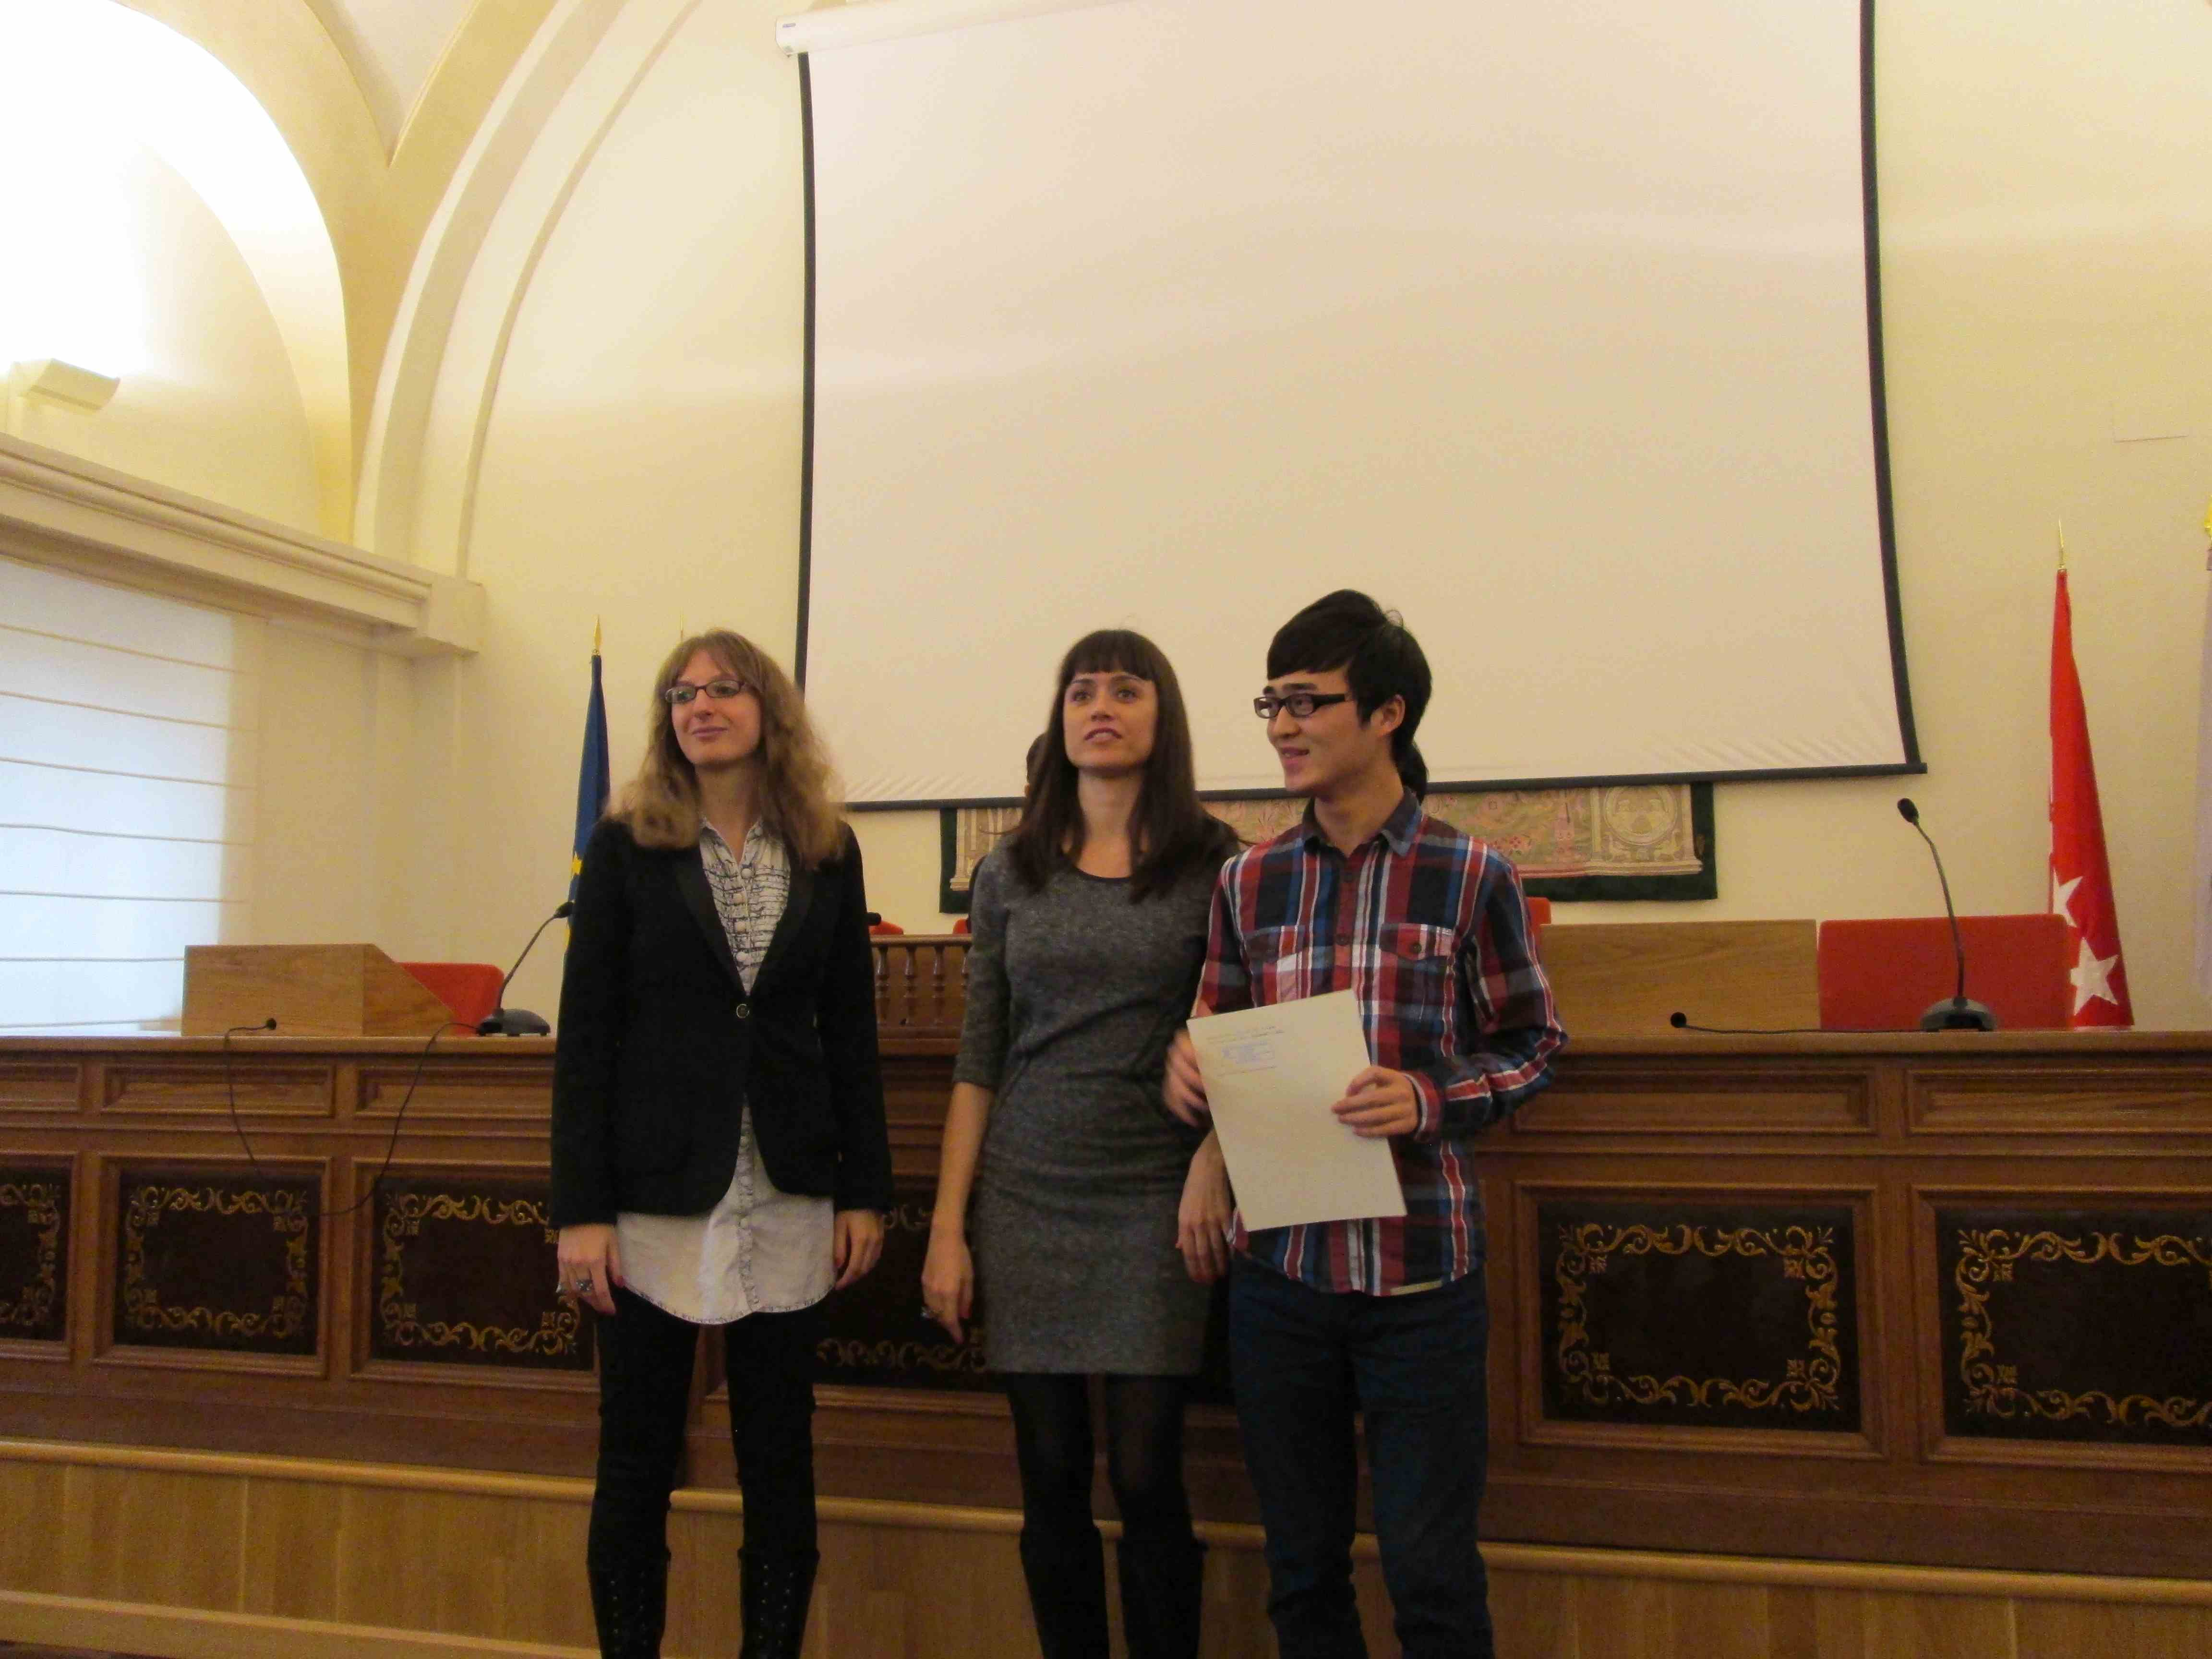 Closing ceremony (autumn 2012)